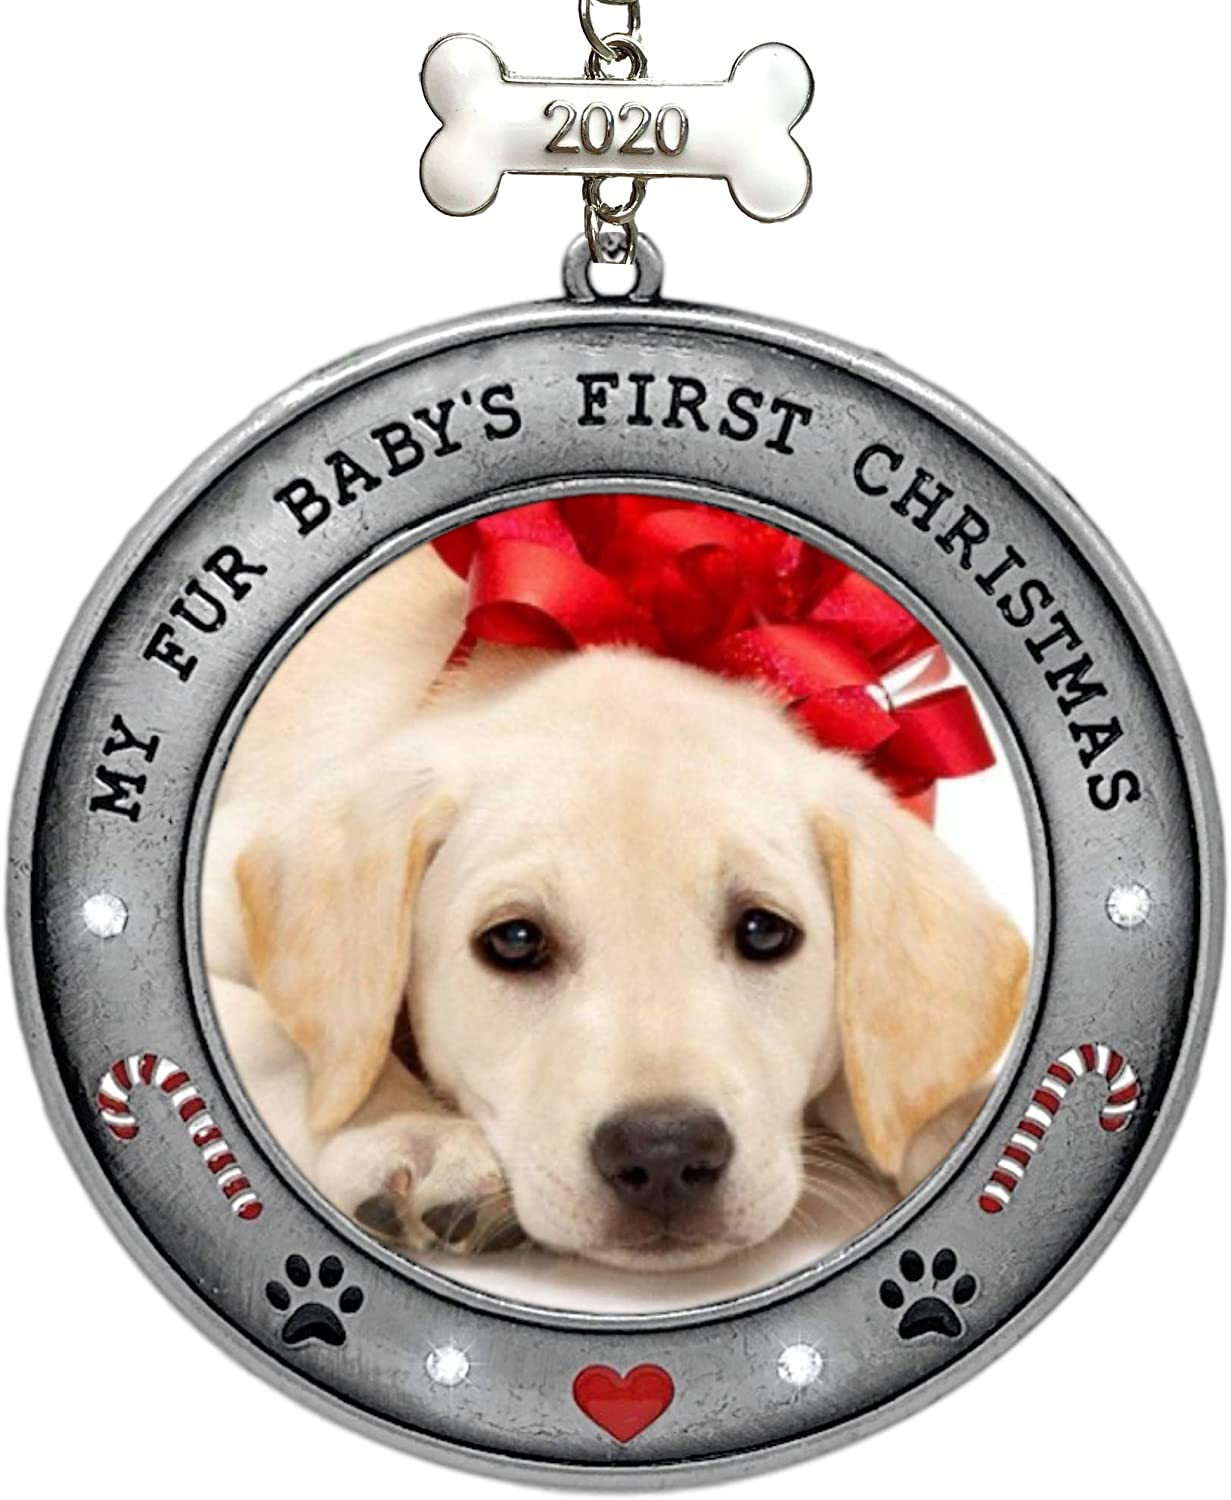 Puppy For Christmas 2020 Amazon.com: BANBERRY DESIGNS Puppy's First Christmas   2020 Dated